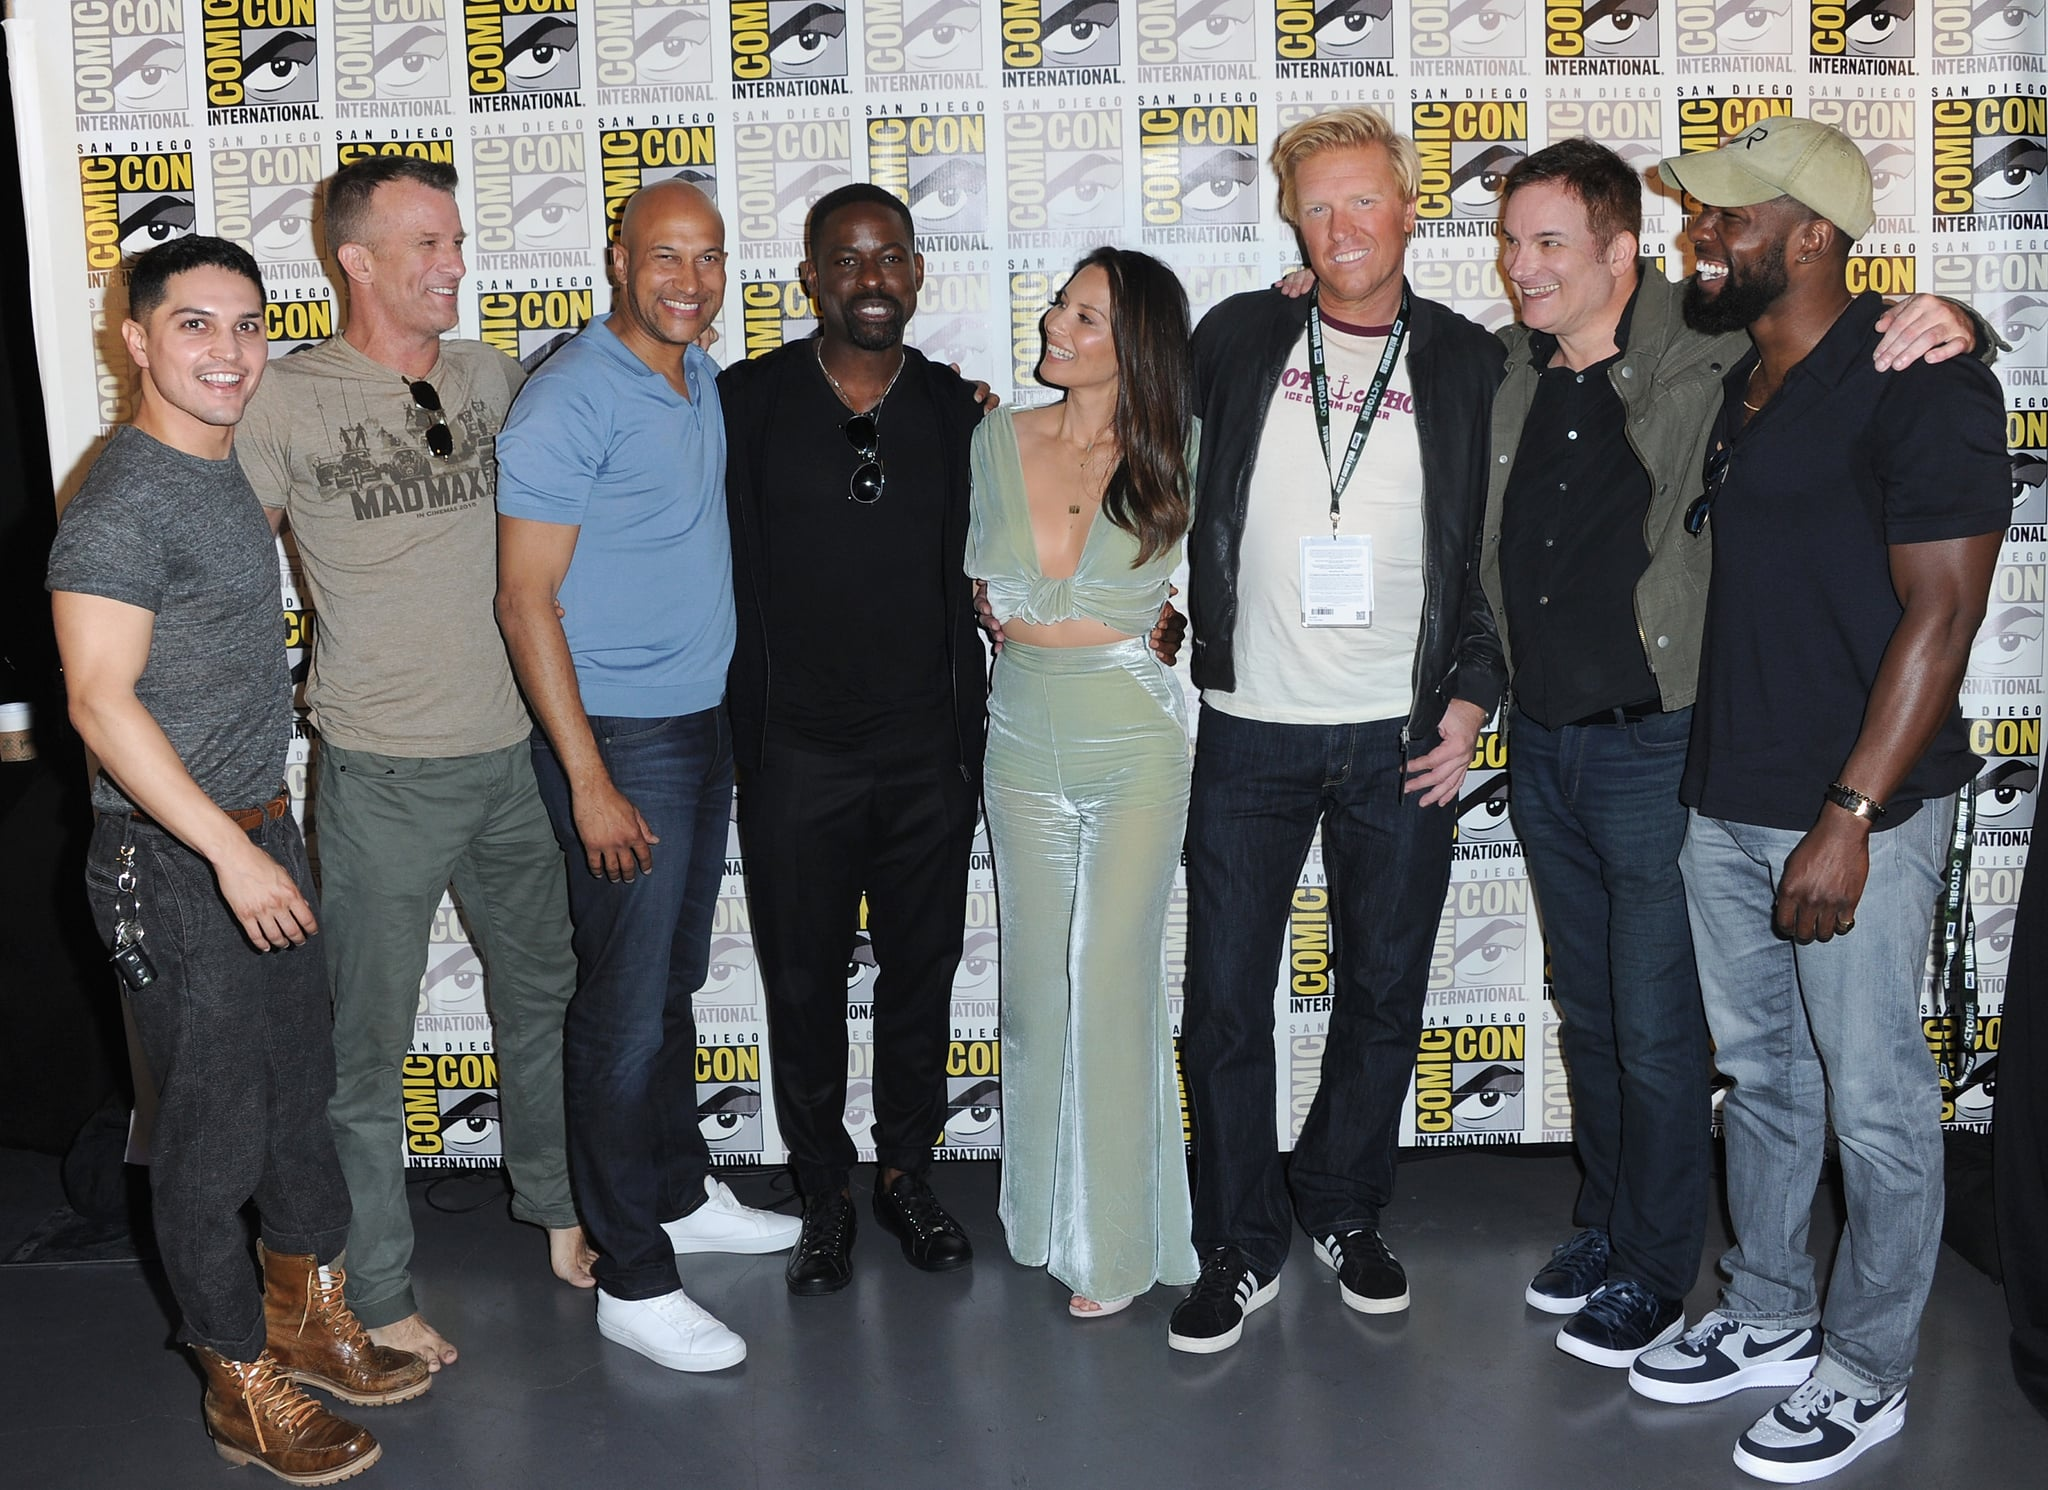 SAN DIEGO, CA - JULY 19:  (L-R) Augusto Aguilera, Thomas Jane, Keegan-Michael Key, Sterling K. Brown, Olivia Munn, Jake Busey, Shane Black, and Trevante Rhodes pose during the 20th Century Fox's